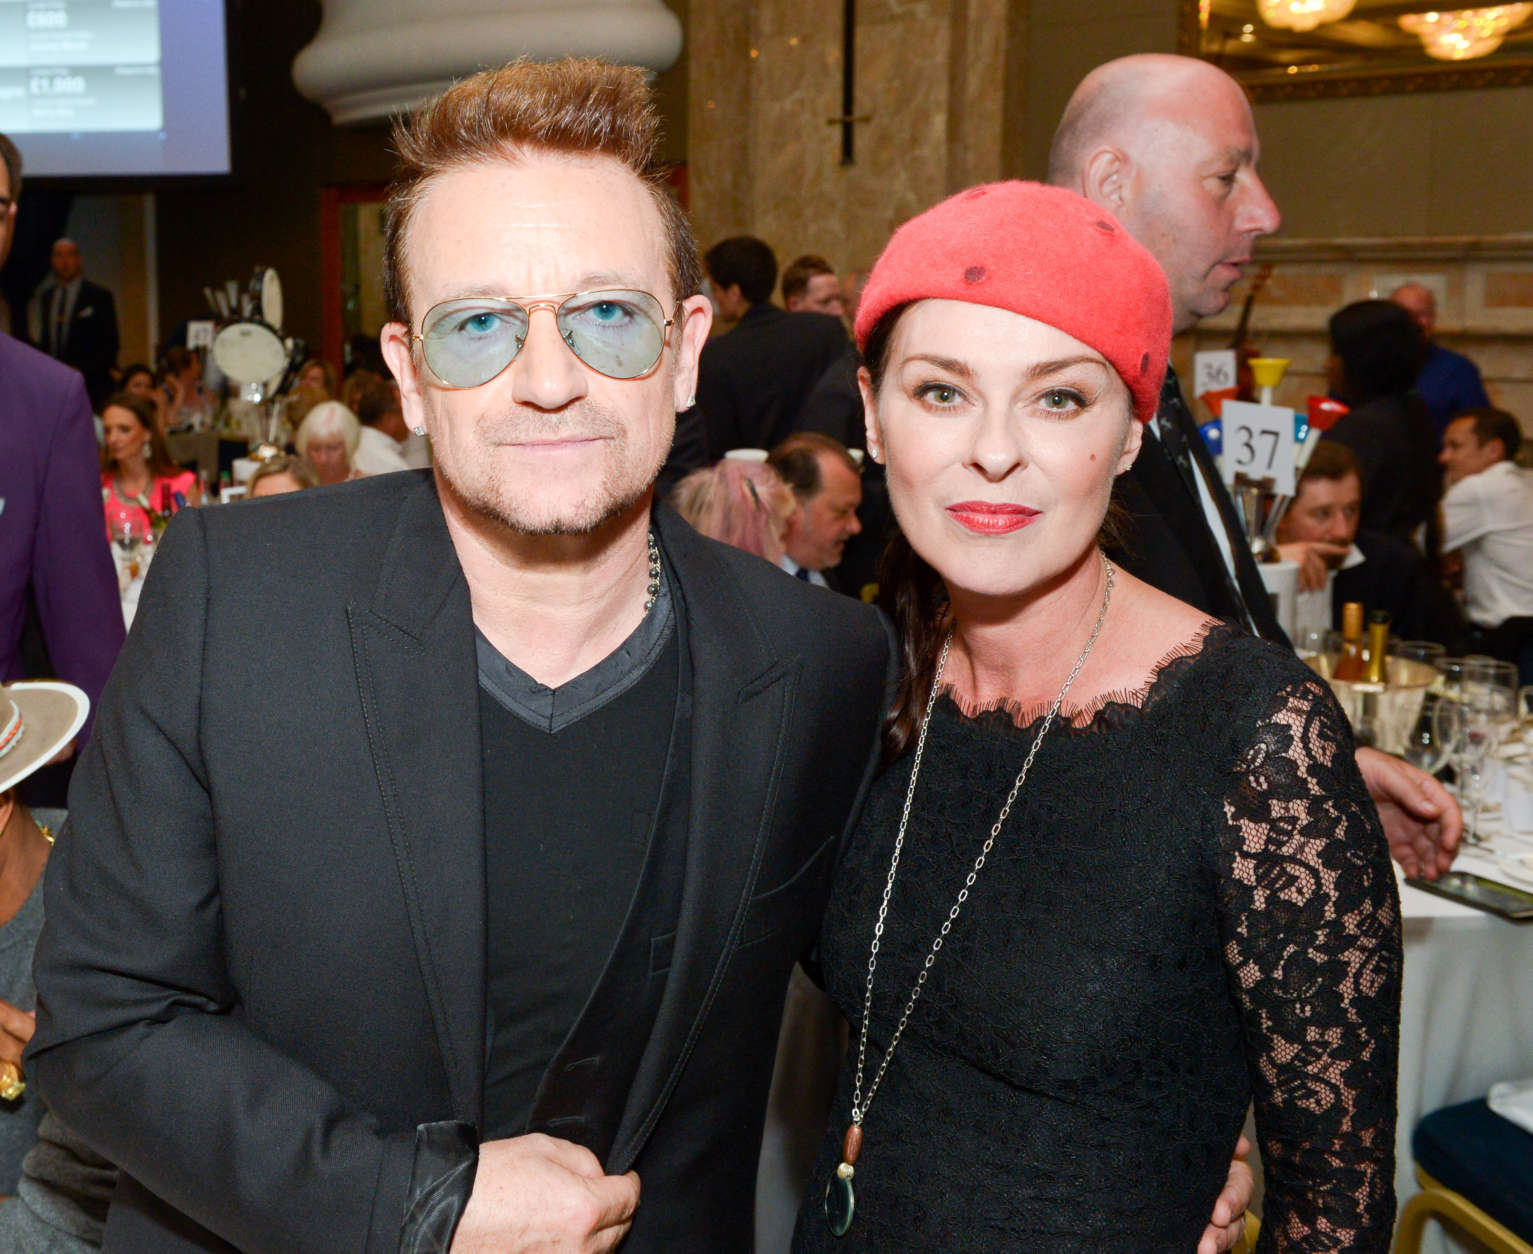 Bono and Lisa Stansfield attend the Nordoff Robbins O2 Silver Clef Awards 2014 at  the Hilton Hotel in London on Friday,  July  4, 2014. (Photo by Jon Furniss/Invision/AP)